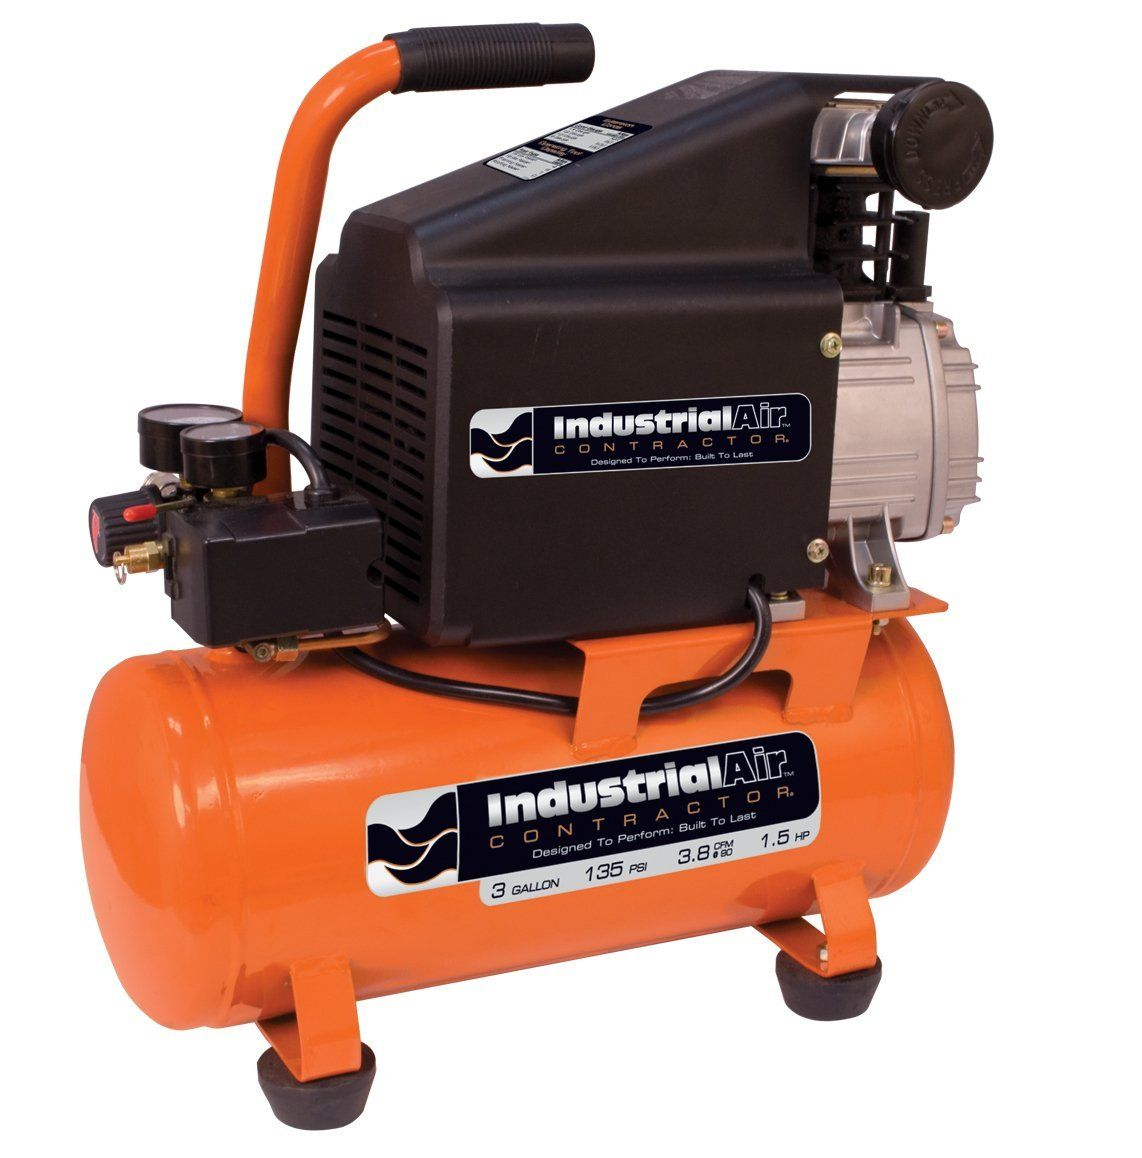 Pin on The Best 12v Air Compressors on the Market